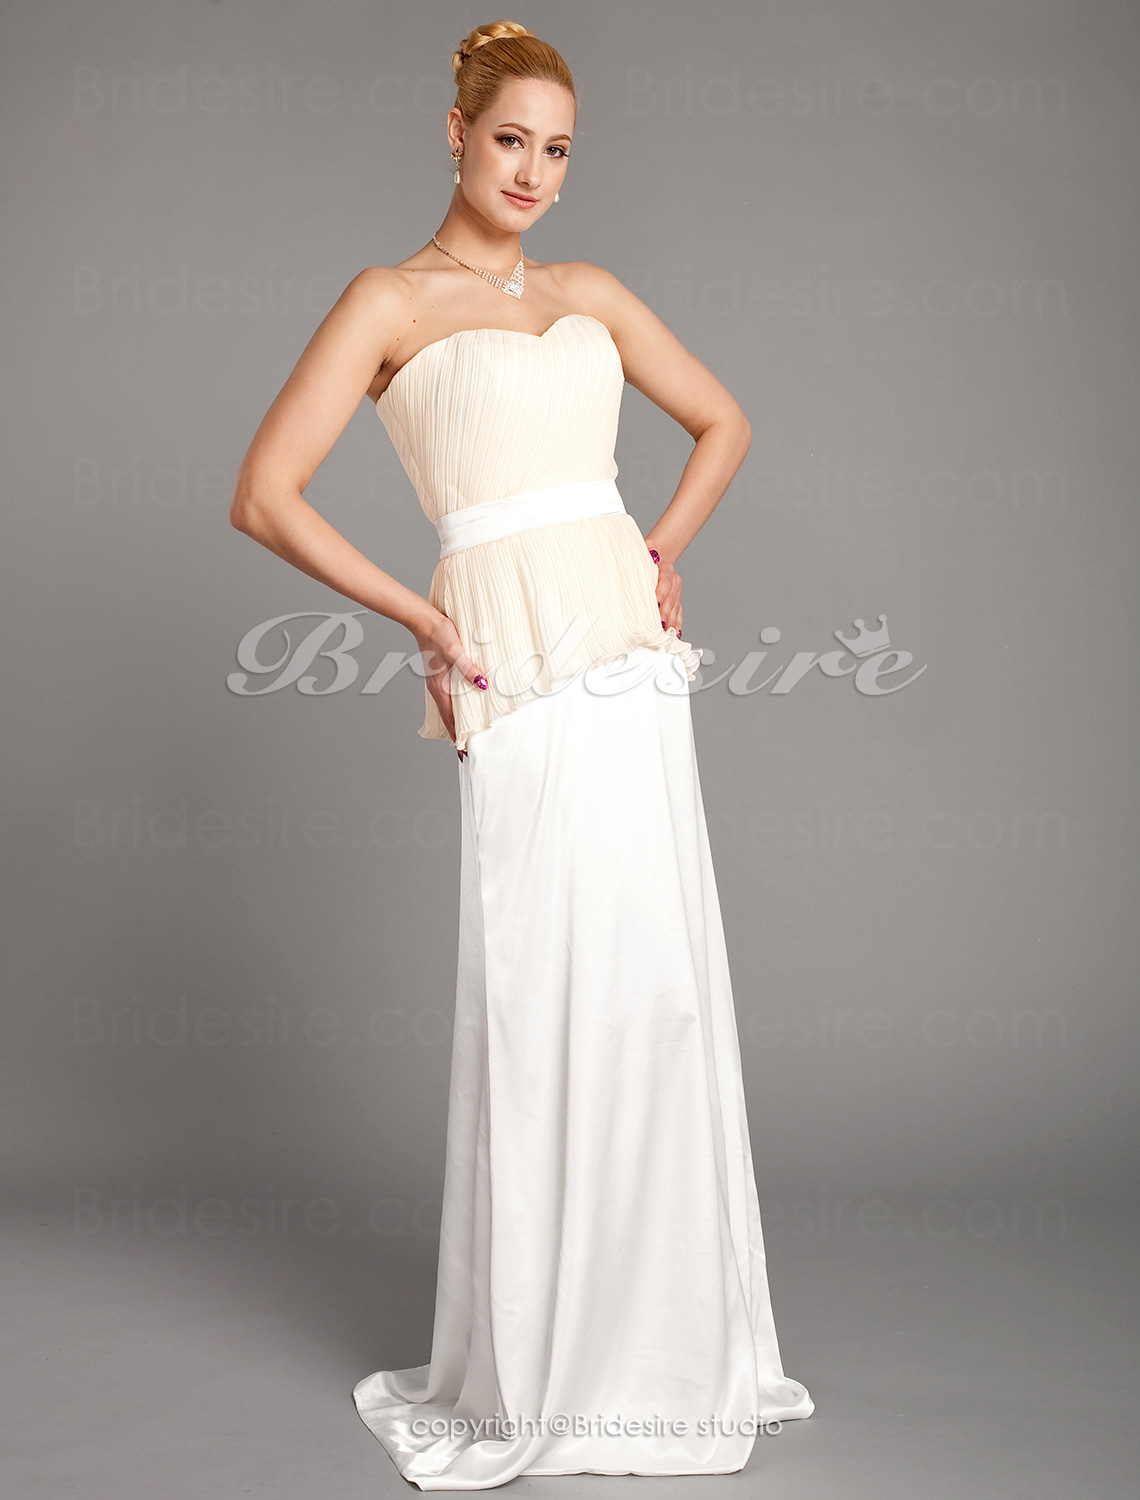 Sheath/ Column Stretch Satin Chiffon Floor-length Sweetheart Bridesmaid Dress